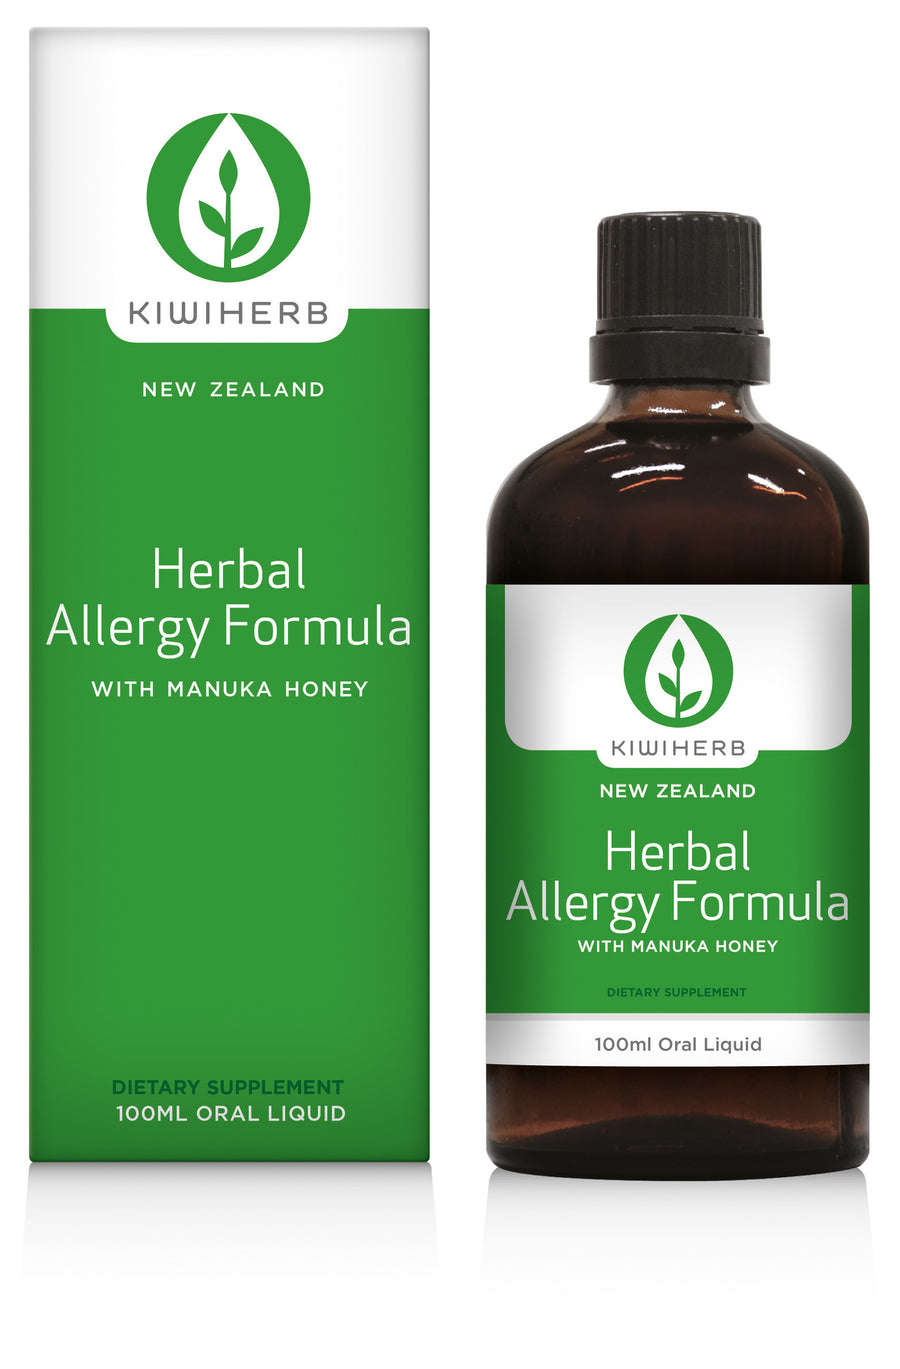 KIWI HERB Allergy Form. 100m